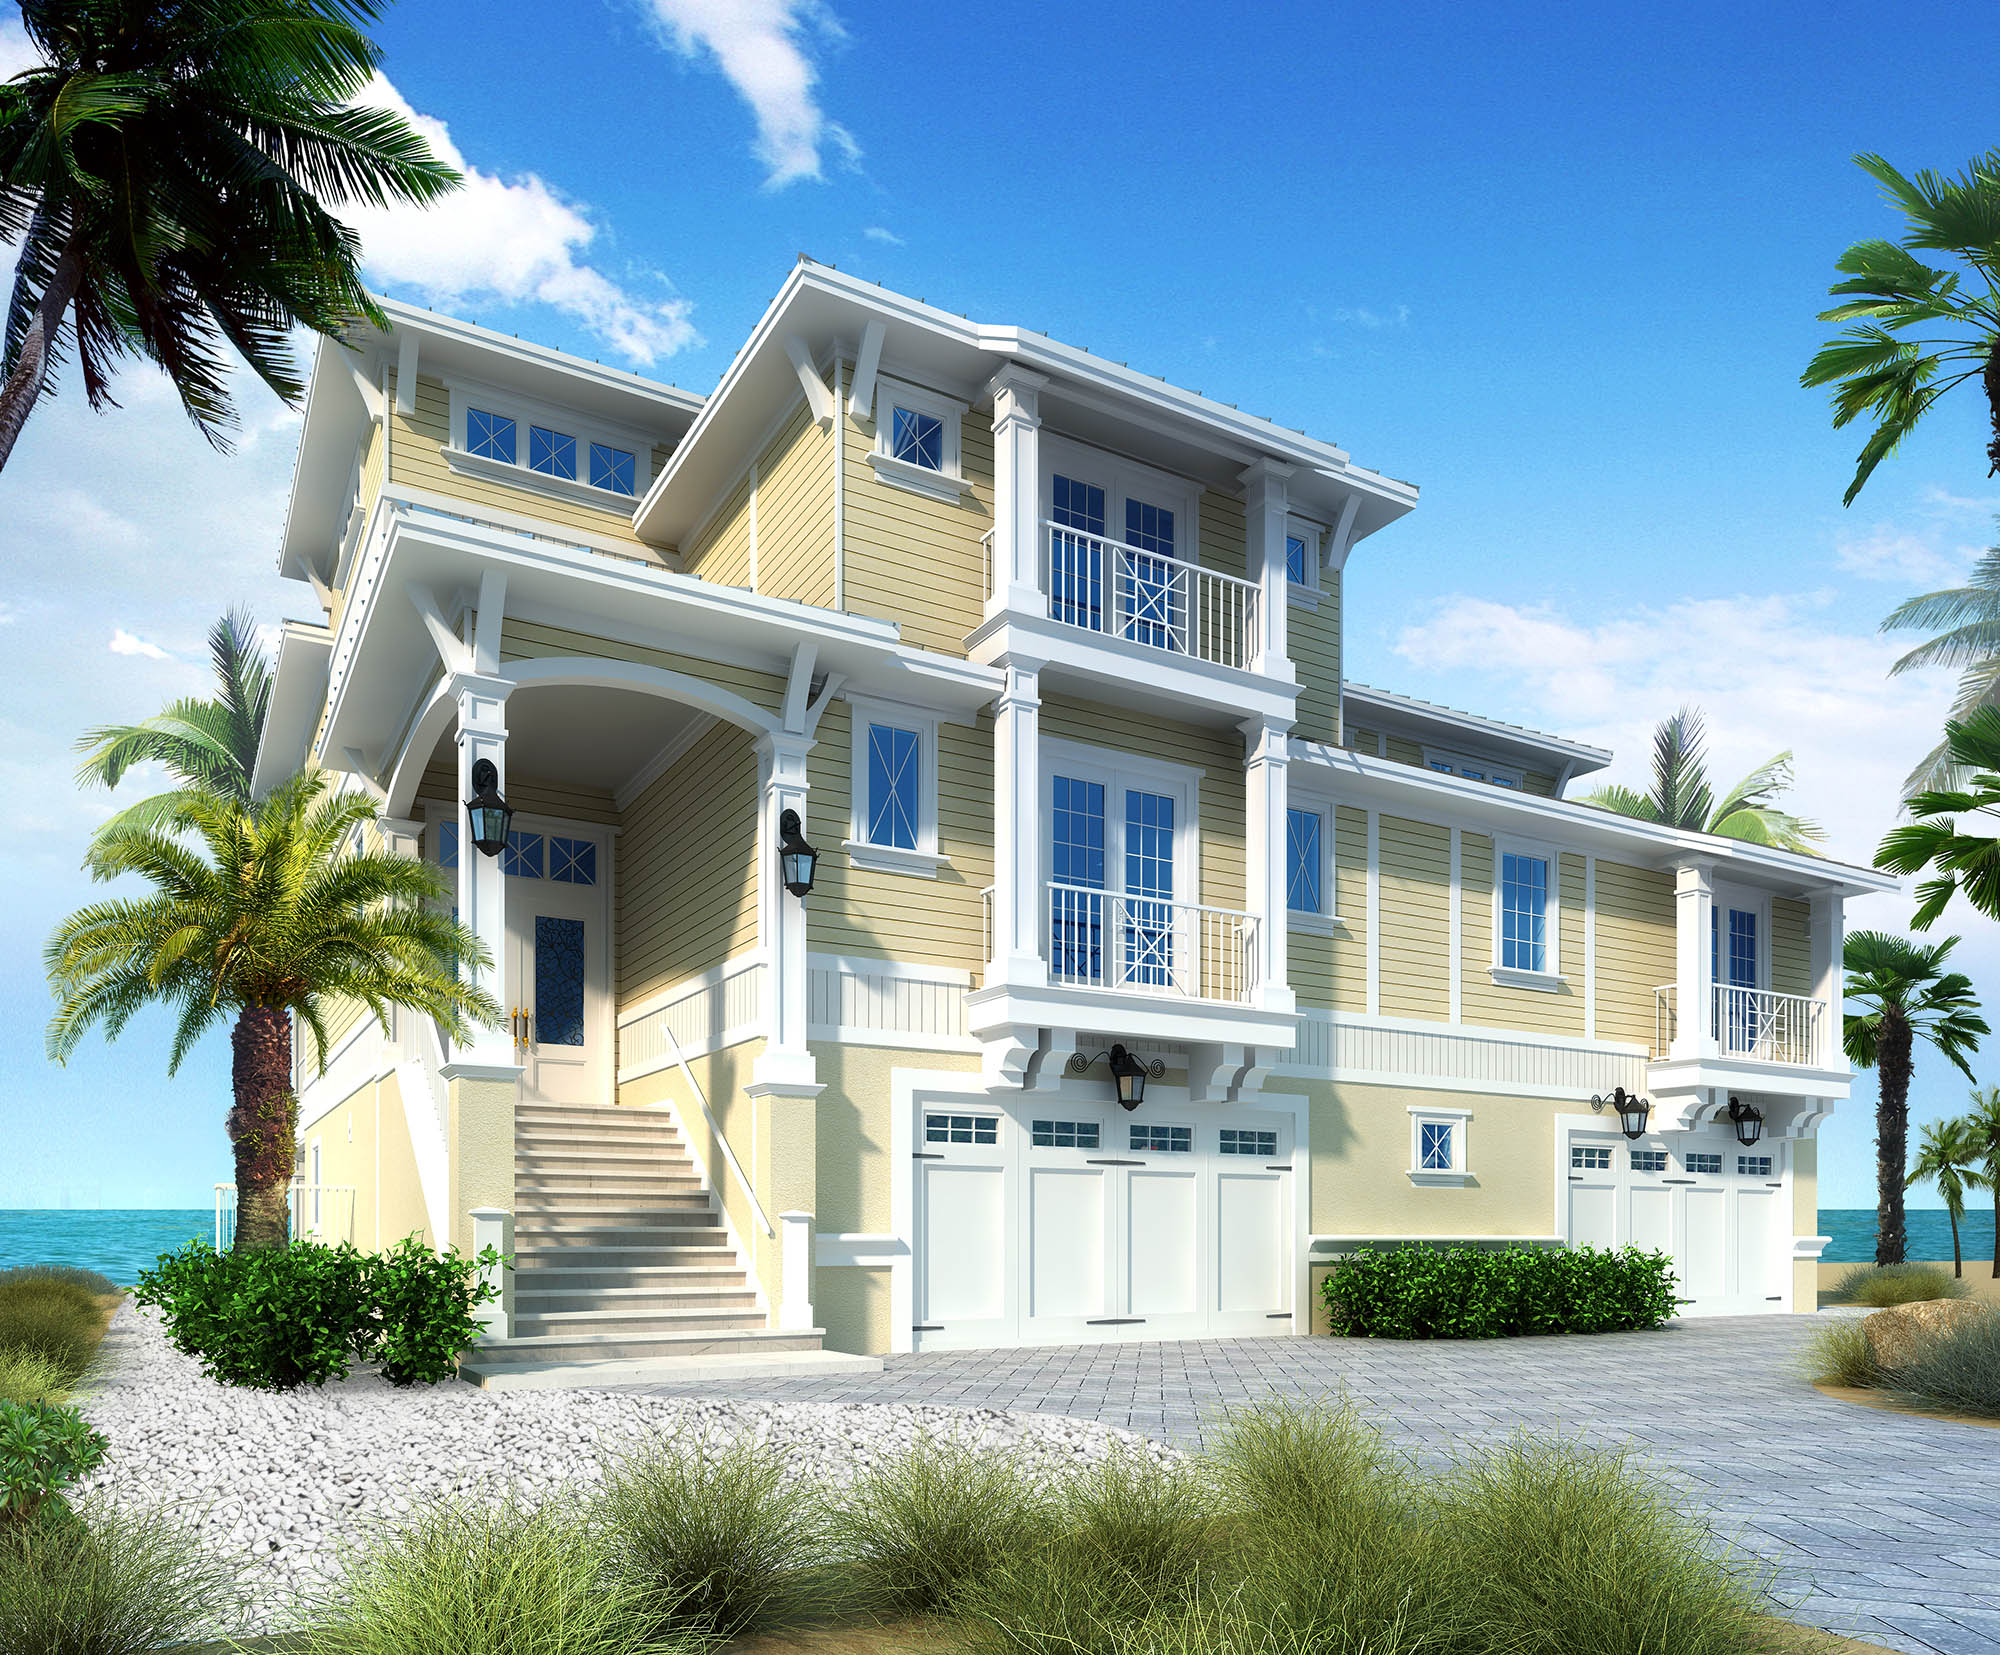 Affordable realistic Renderings From